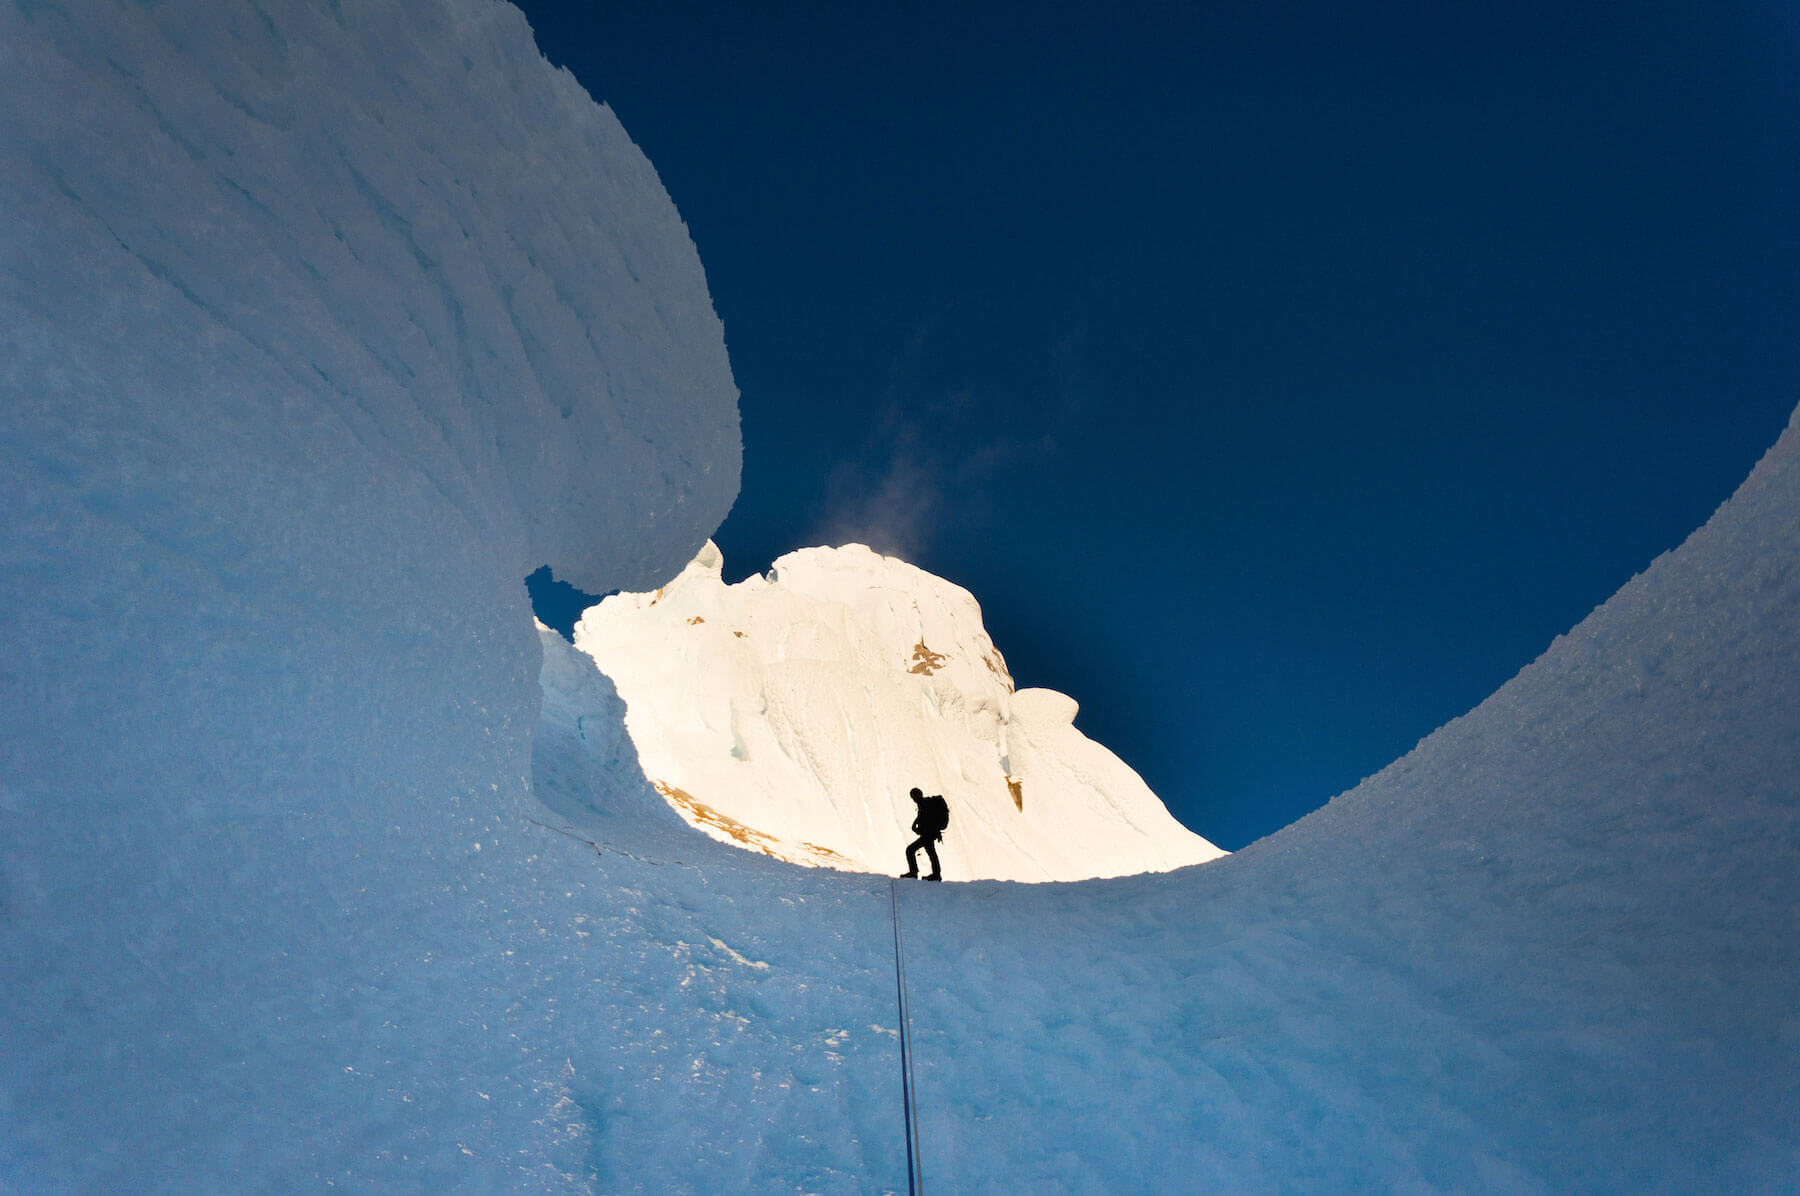 Chris Willie climbing in the Cerro Torre mountain